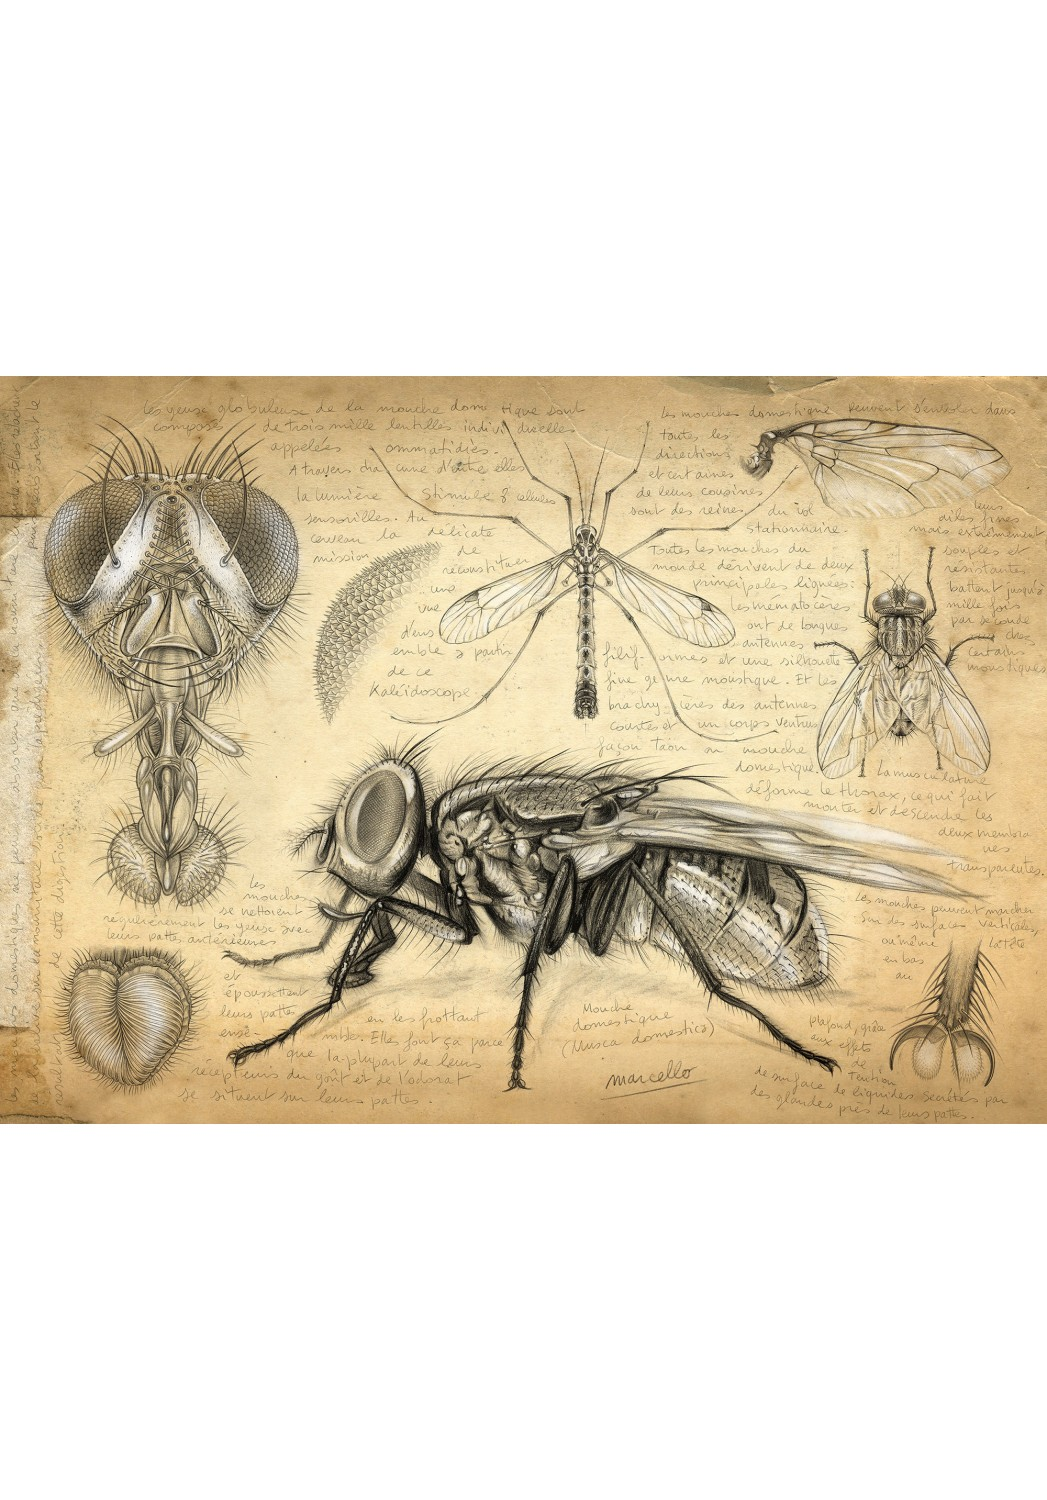 Marcello-art: Wish Card 367 - House fly